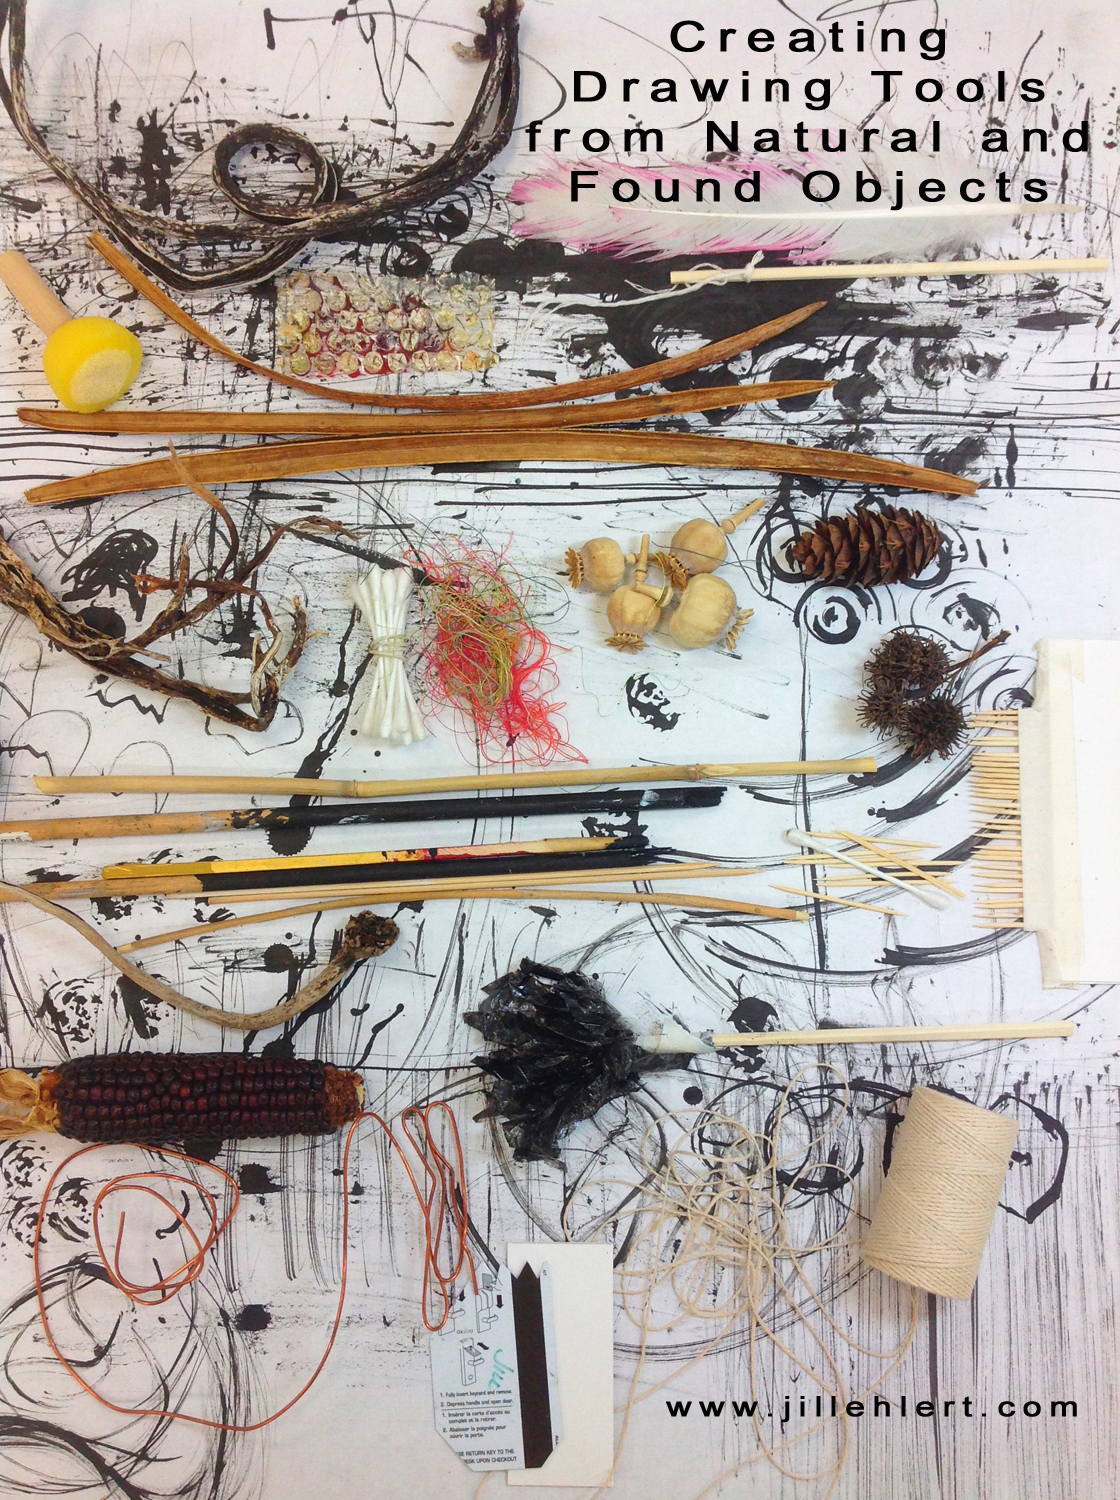 """""""Found"""" tools will include sticks, twigs, cotton swabs, fingers, toothpicks, dried plant material, bamboo skewers, string, seedpods, feathers and wire."""